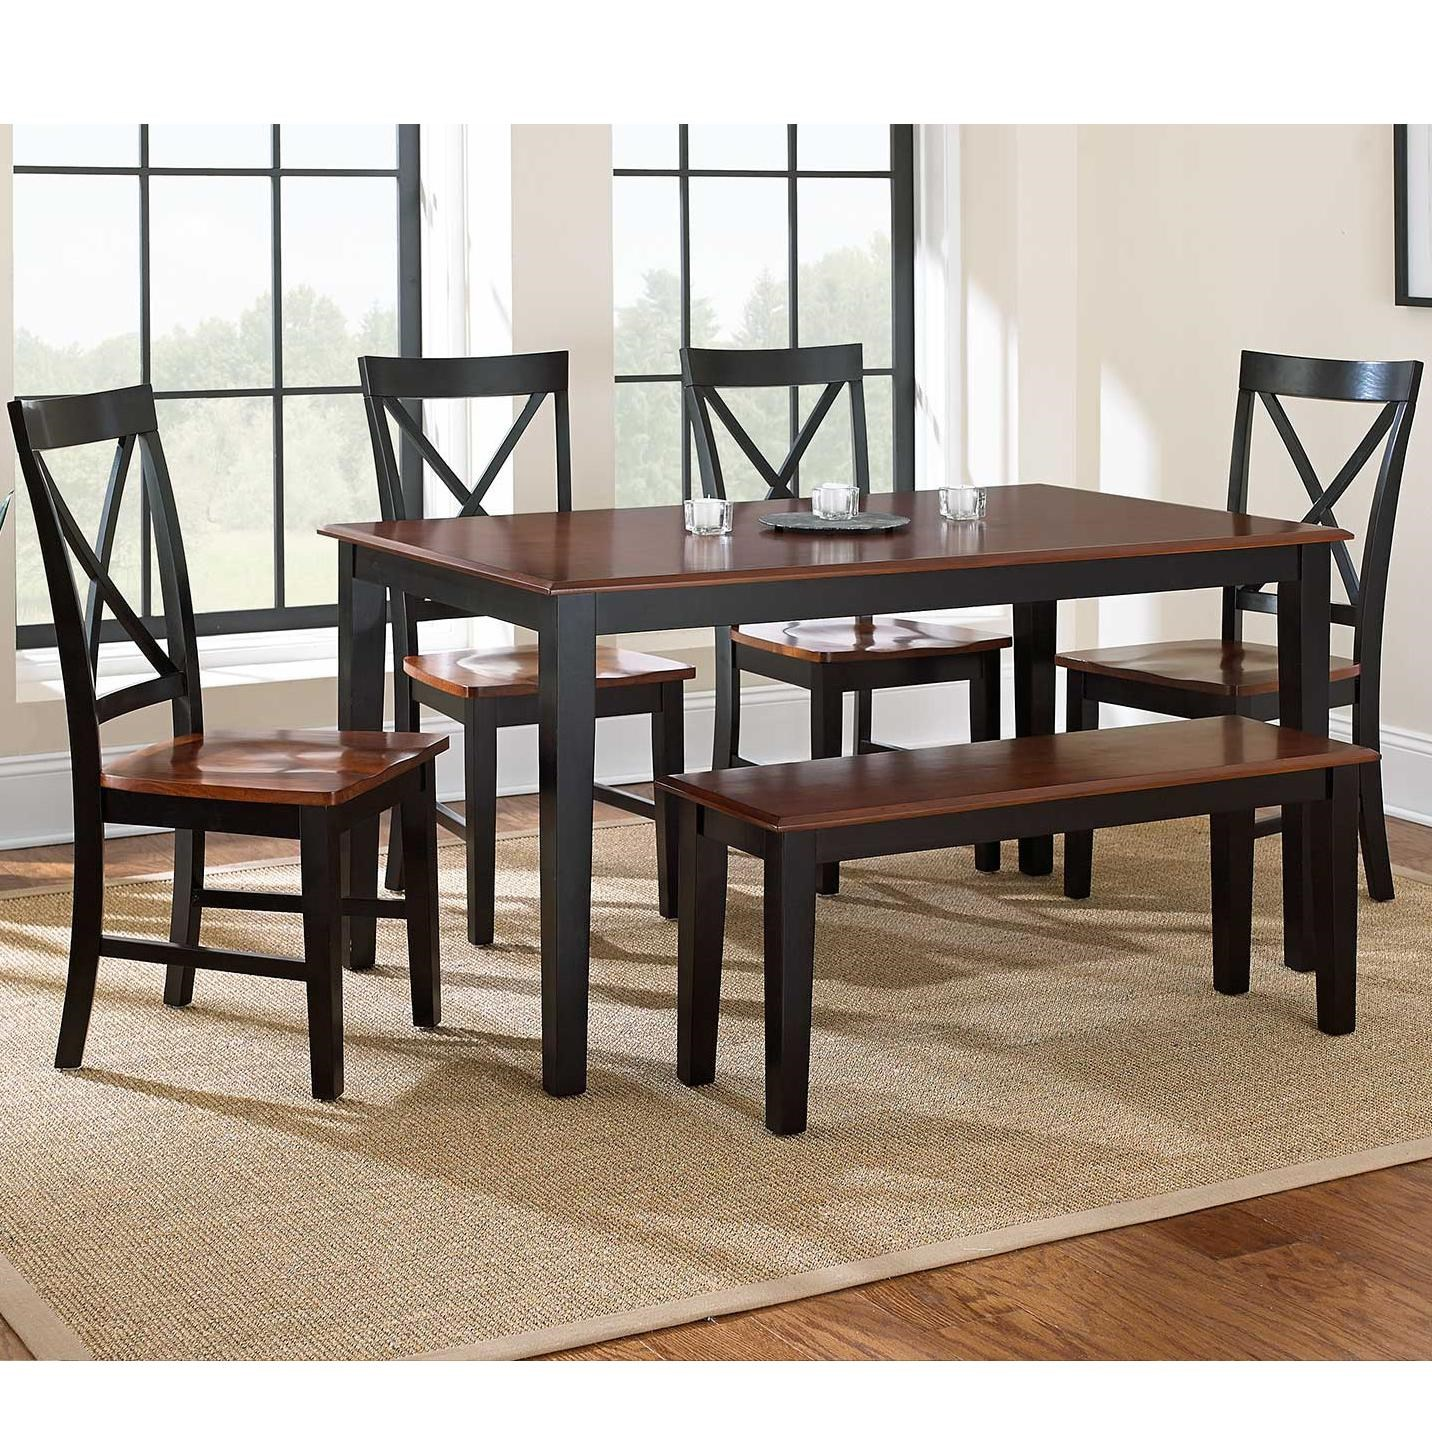 Kingston 6 Piece Casual Dining Table, Bench, U0026 Side Chair Set By Vendor 3985